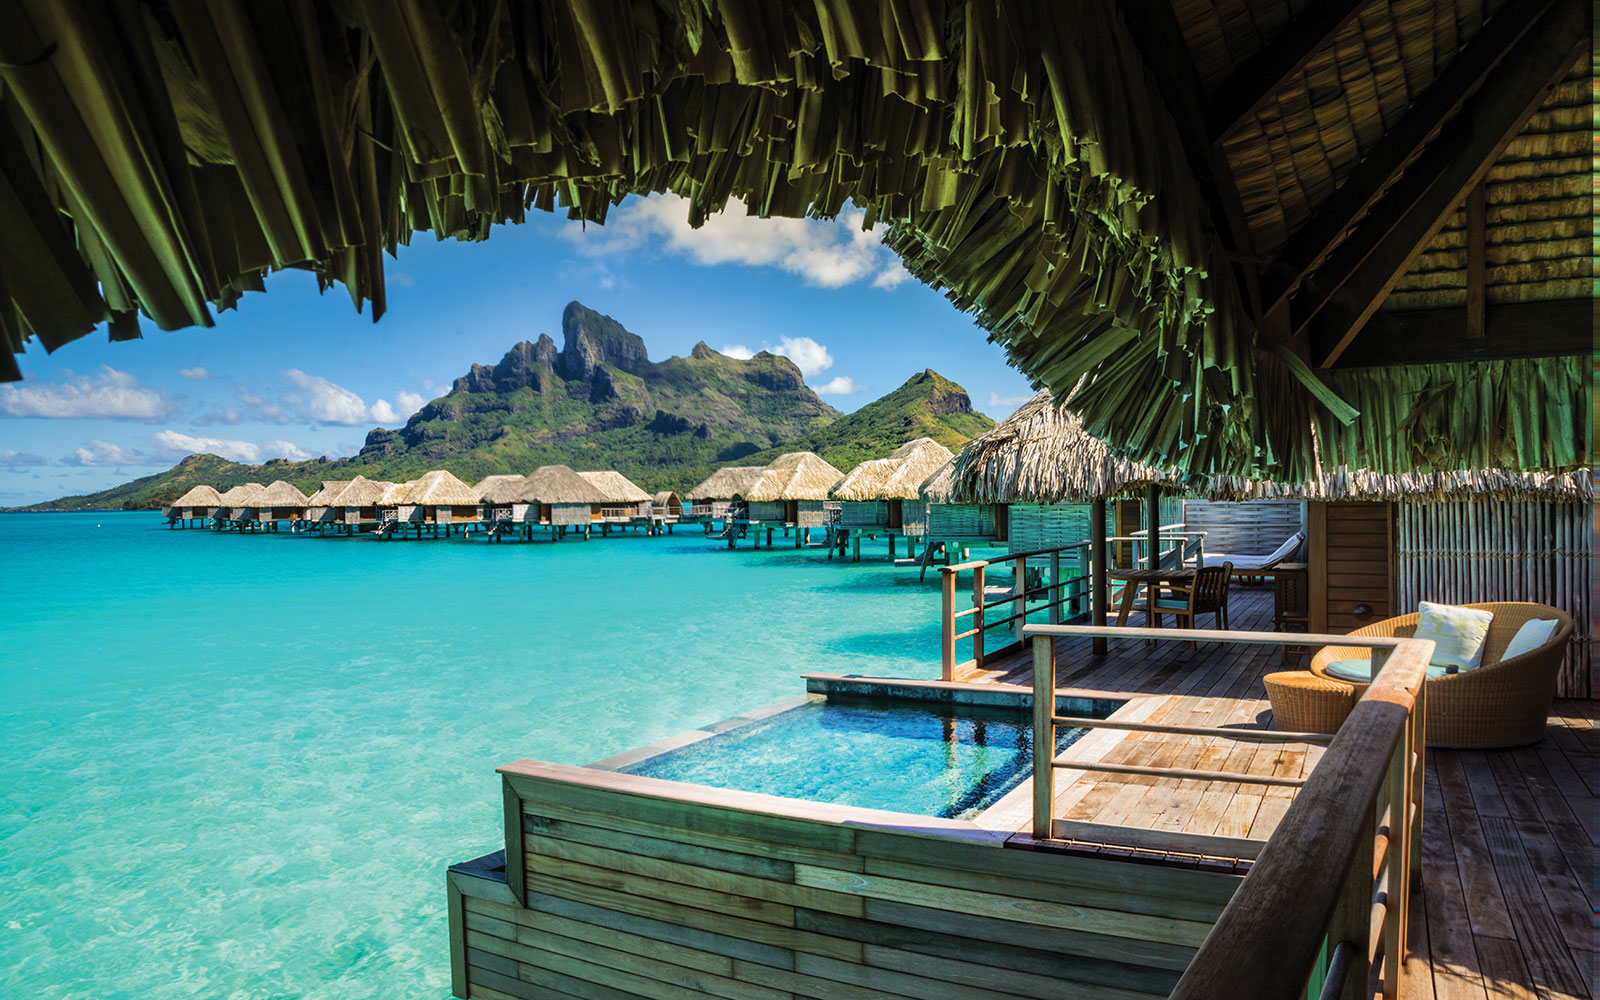 World's Best Beach Hotels: No. 16 Four Seasons Resort Bora Bora